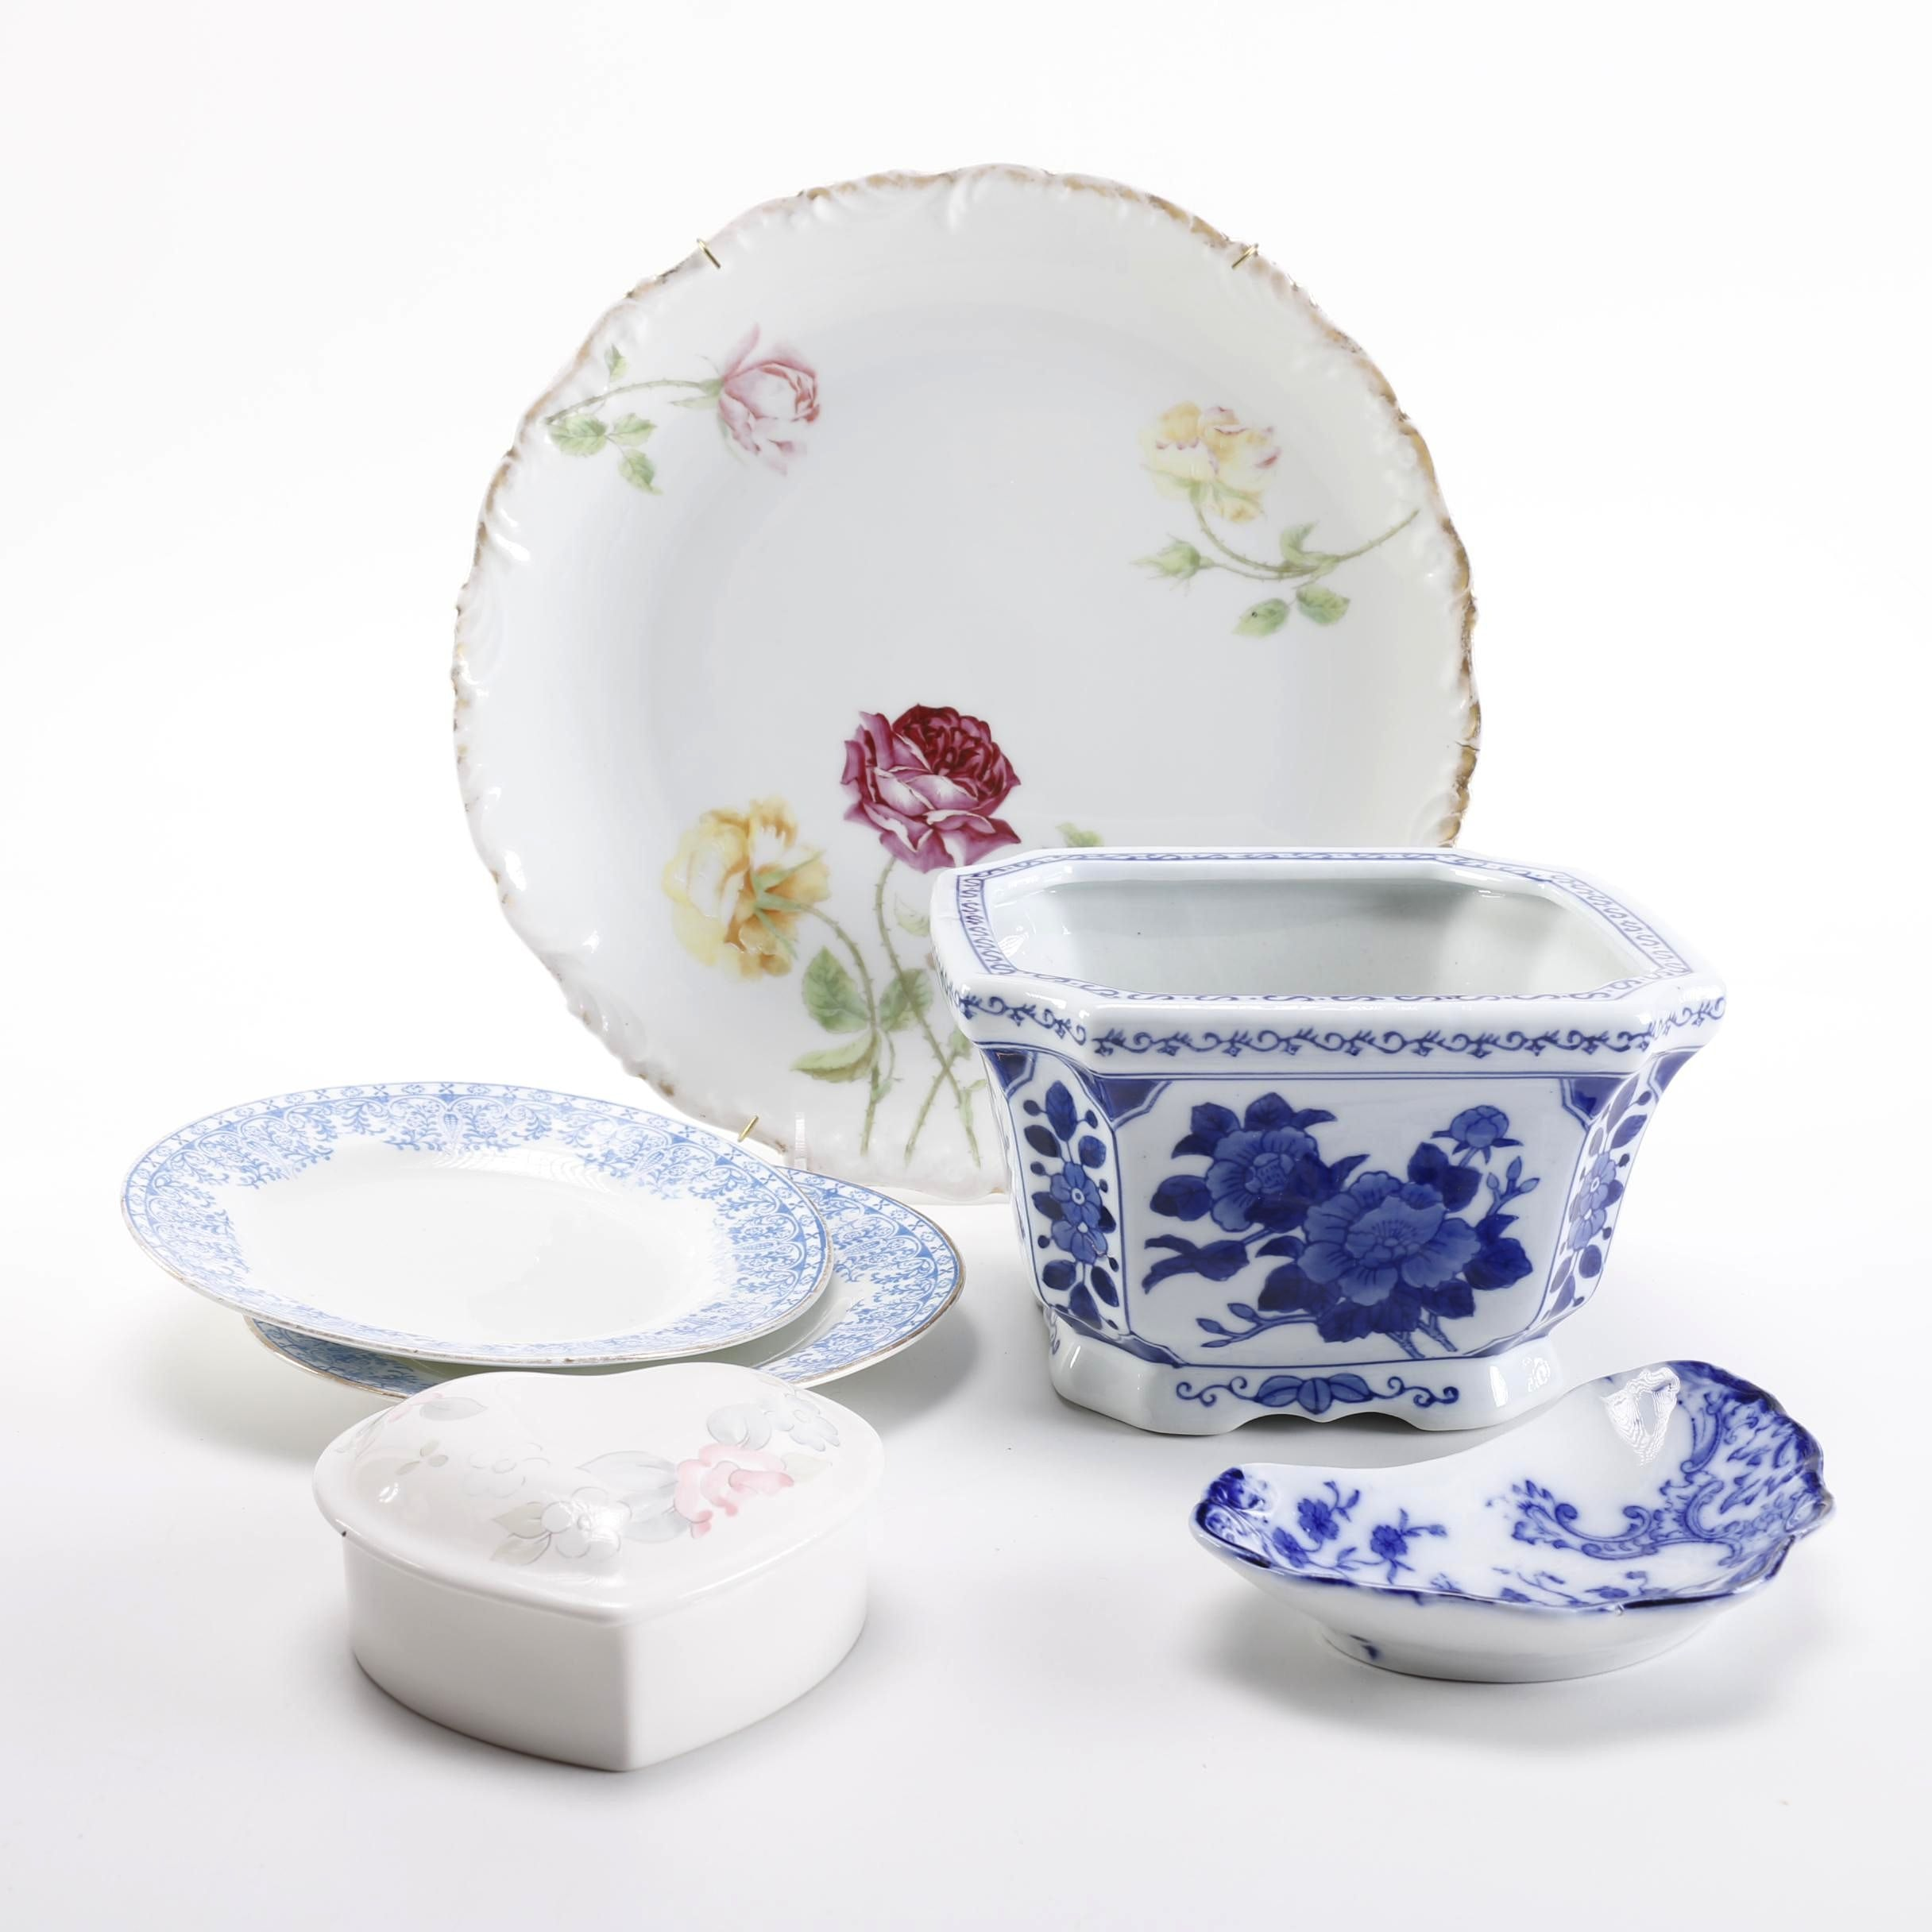 Assortment Of China Including Hand-Painted Tressemann and Vogt